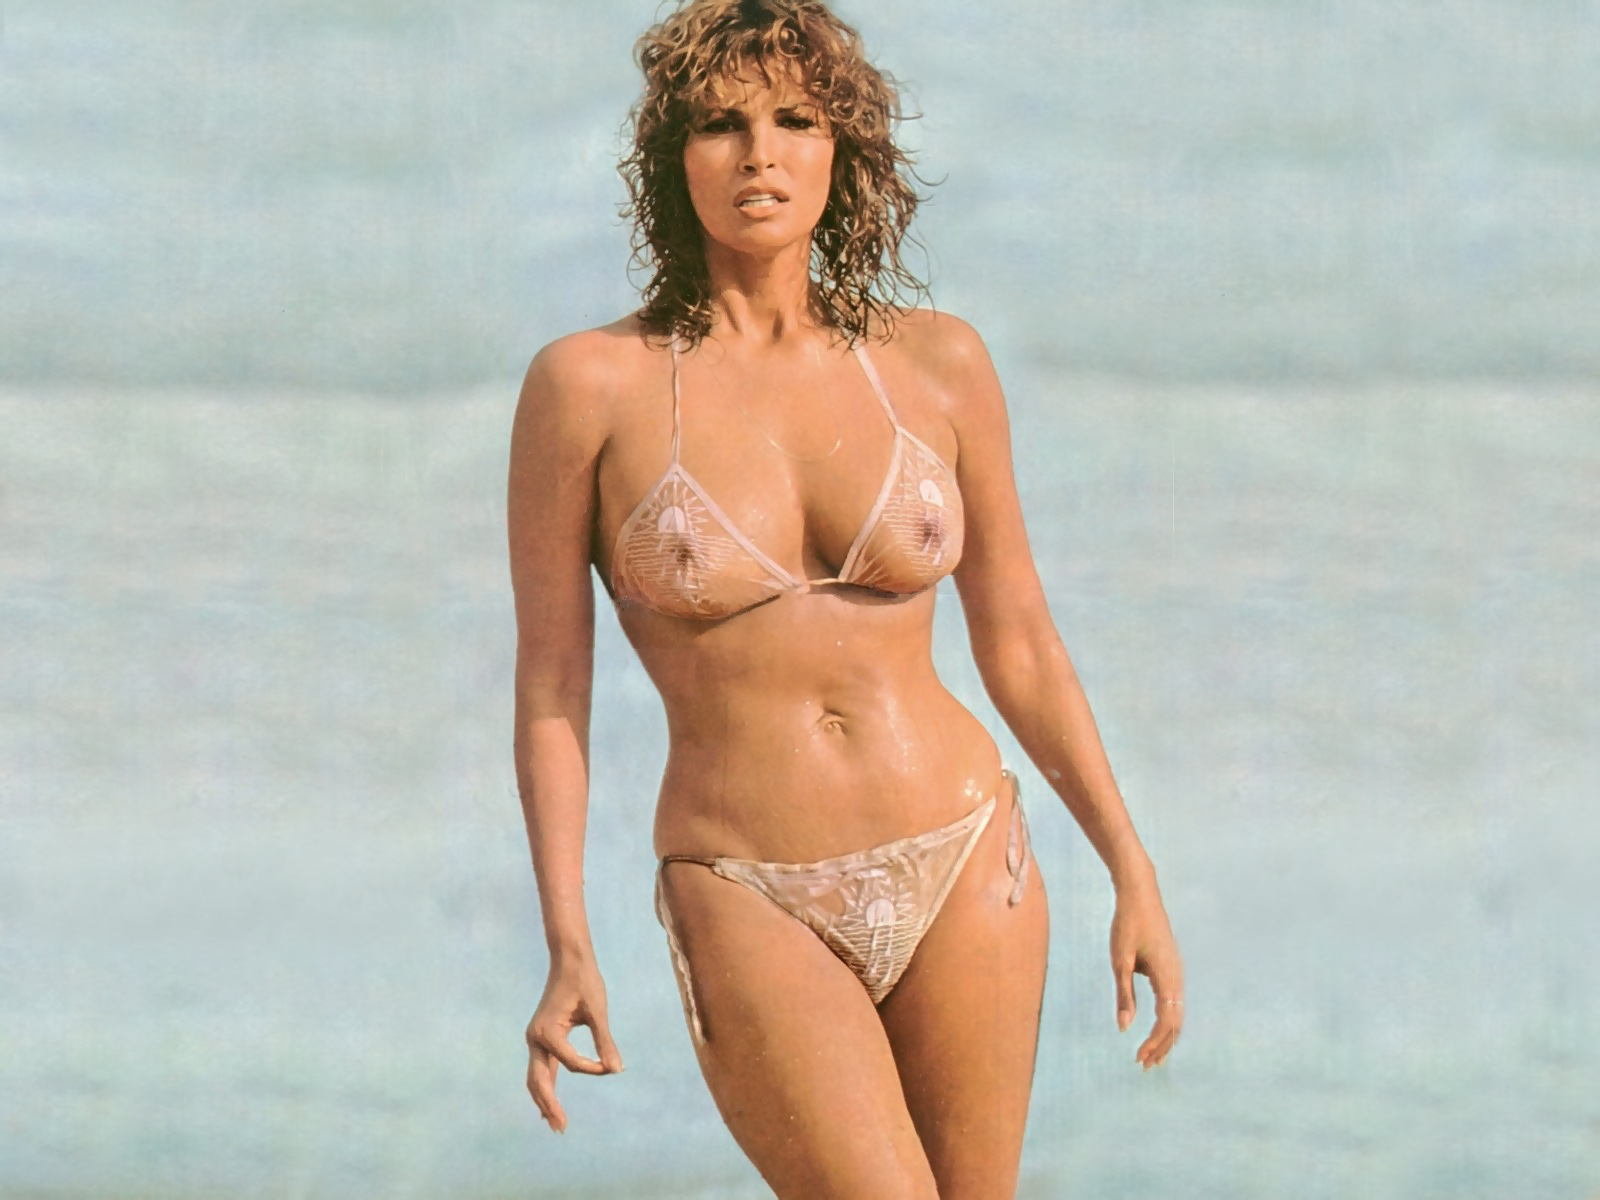 Hot raquel welch